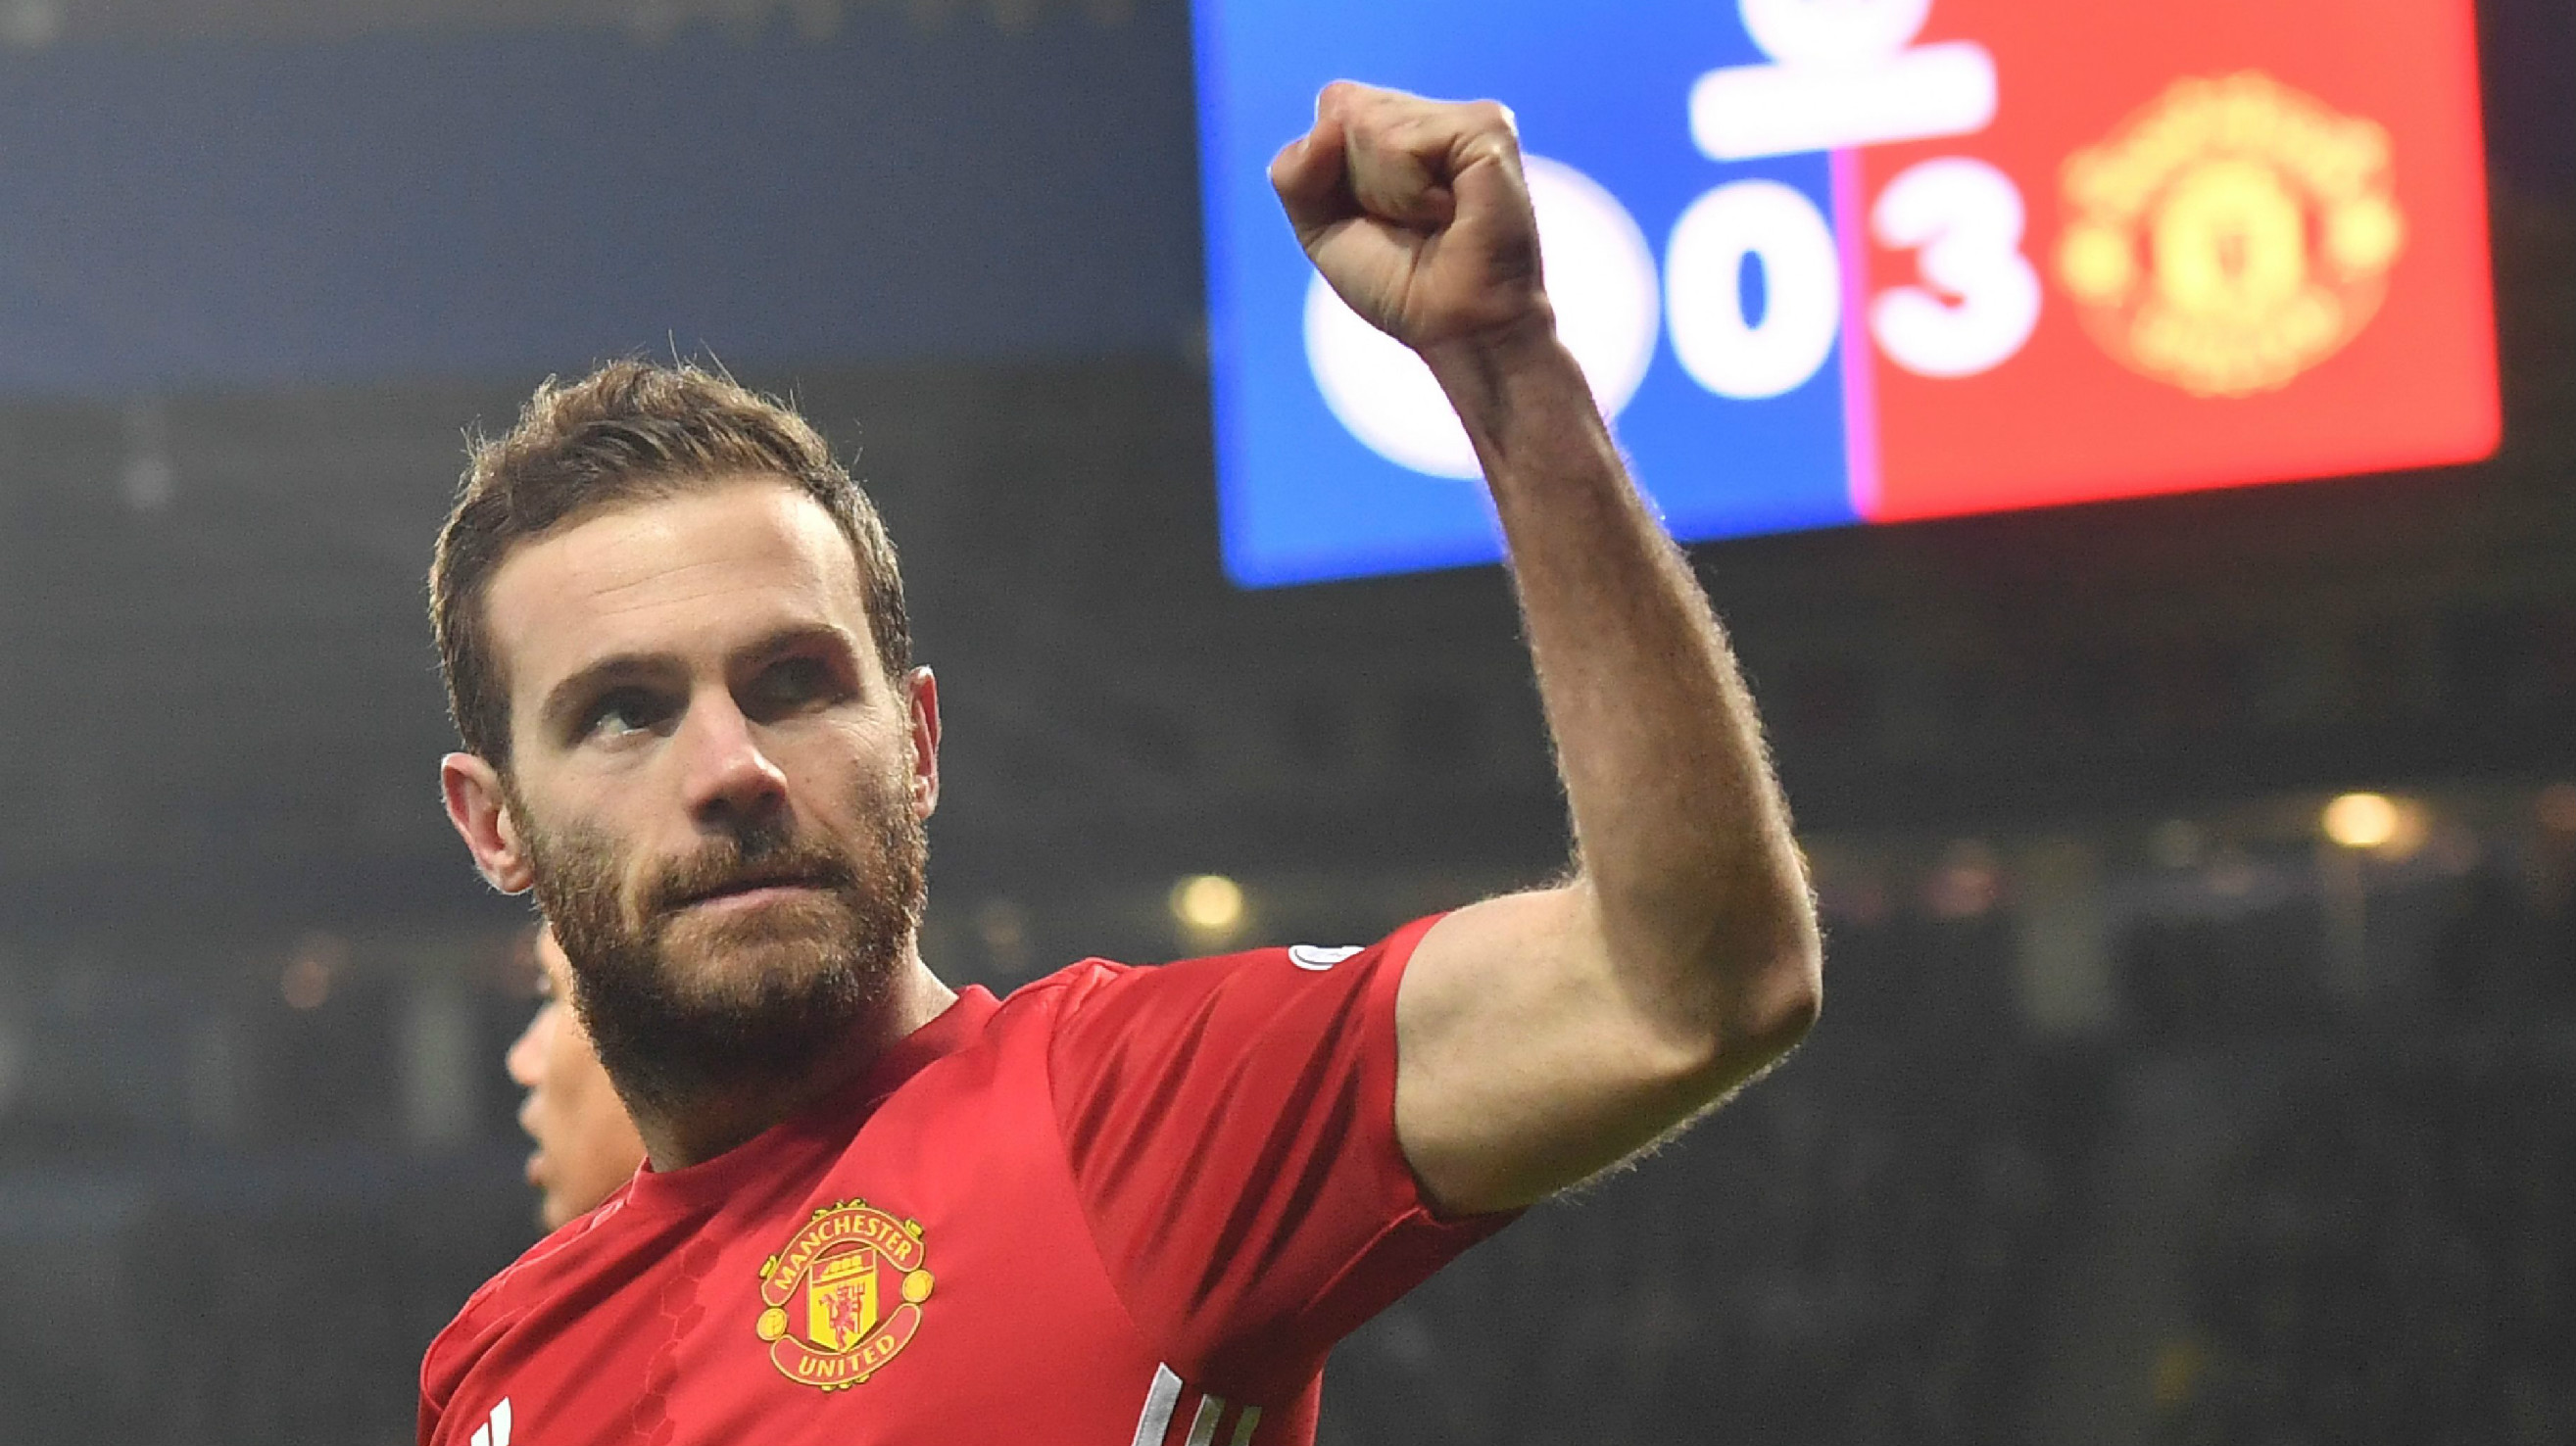 Leicester City V Manchester United Match Report, 05/02